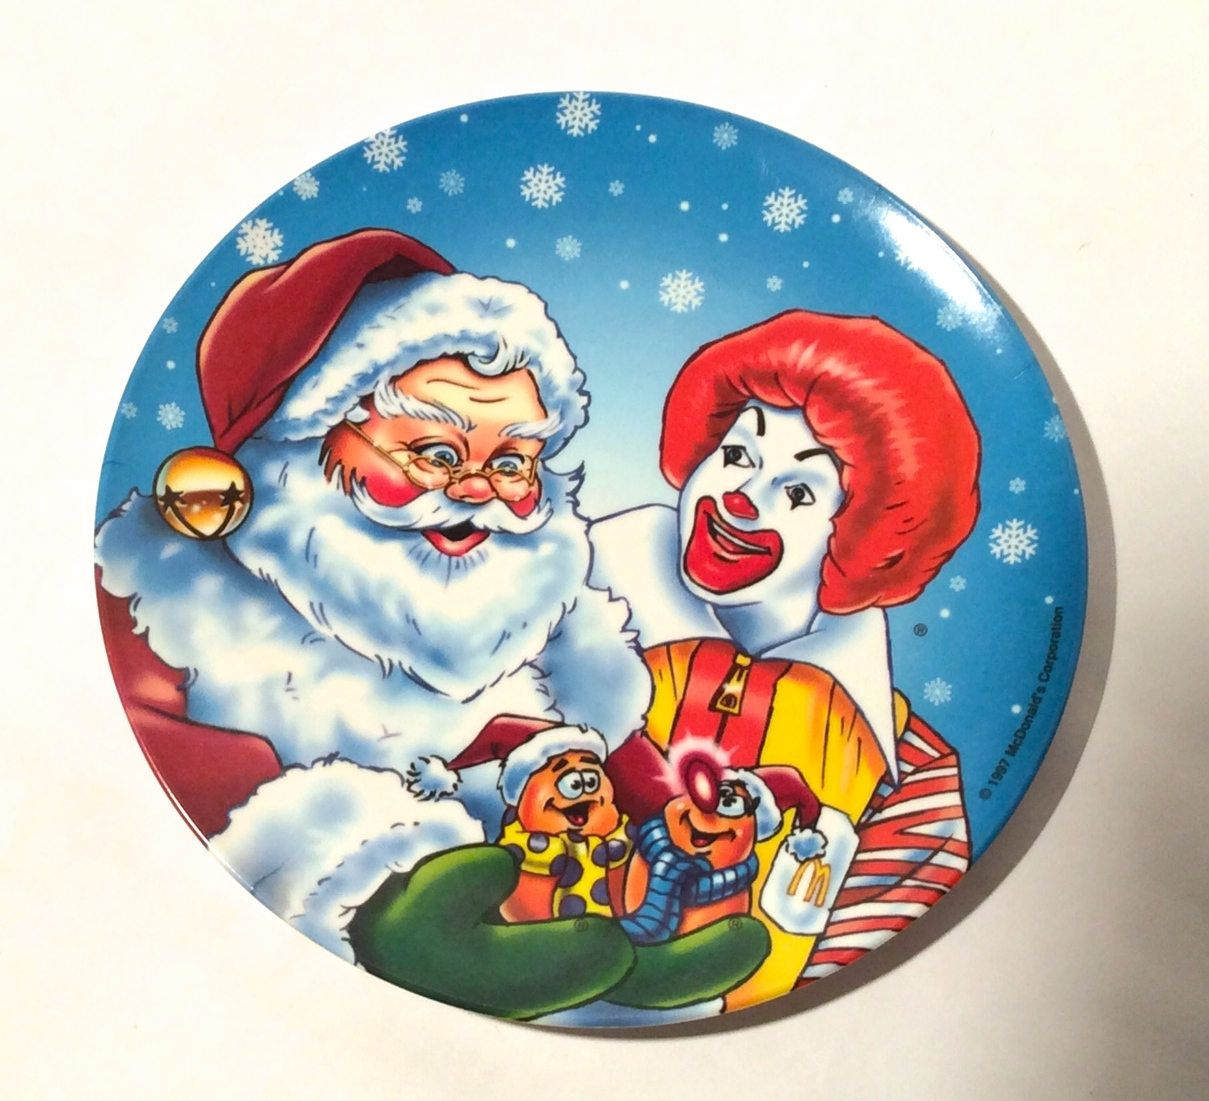 Vintage 1990s Santa and Ronald McDonald with Chicken Nuggets Christmas Holiday Plastic Plate So cute!  sc 1 st  Pinterest & Vintage 1990s Santa and Ronald McDonald with Chicken Nuggets ...